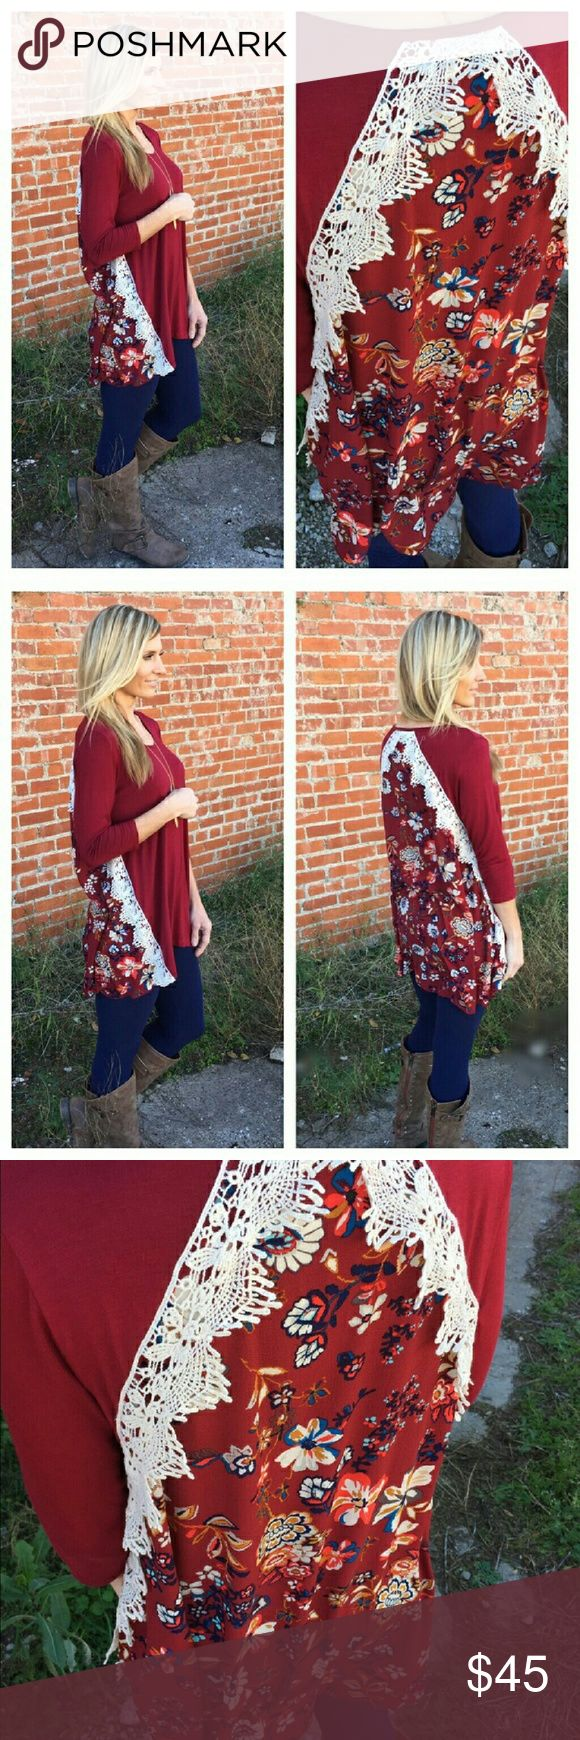 NWT BURGUNDY FLORAL & LACE TUNIC Burgundy Floral and lace accent tunic.  95% rayon 5% spandex. Infinity Raine Tops Tunics